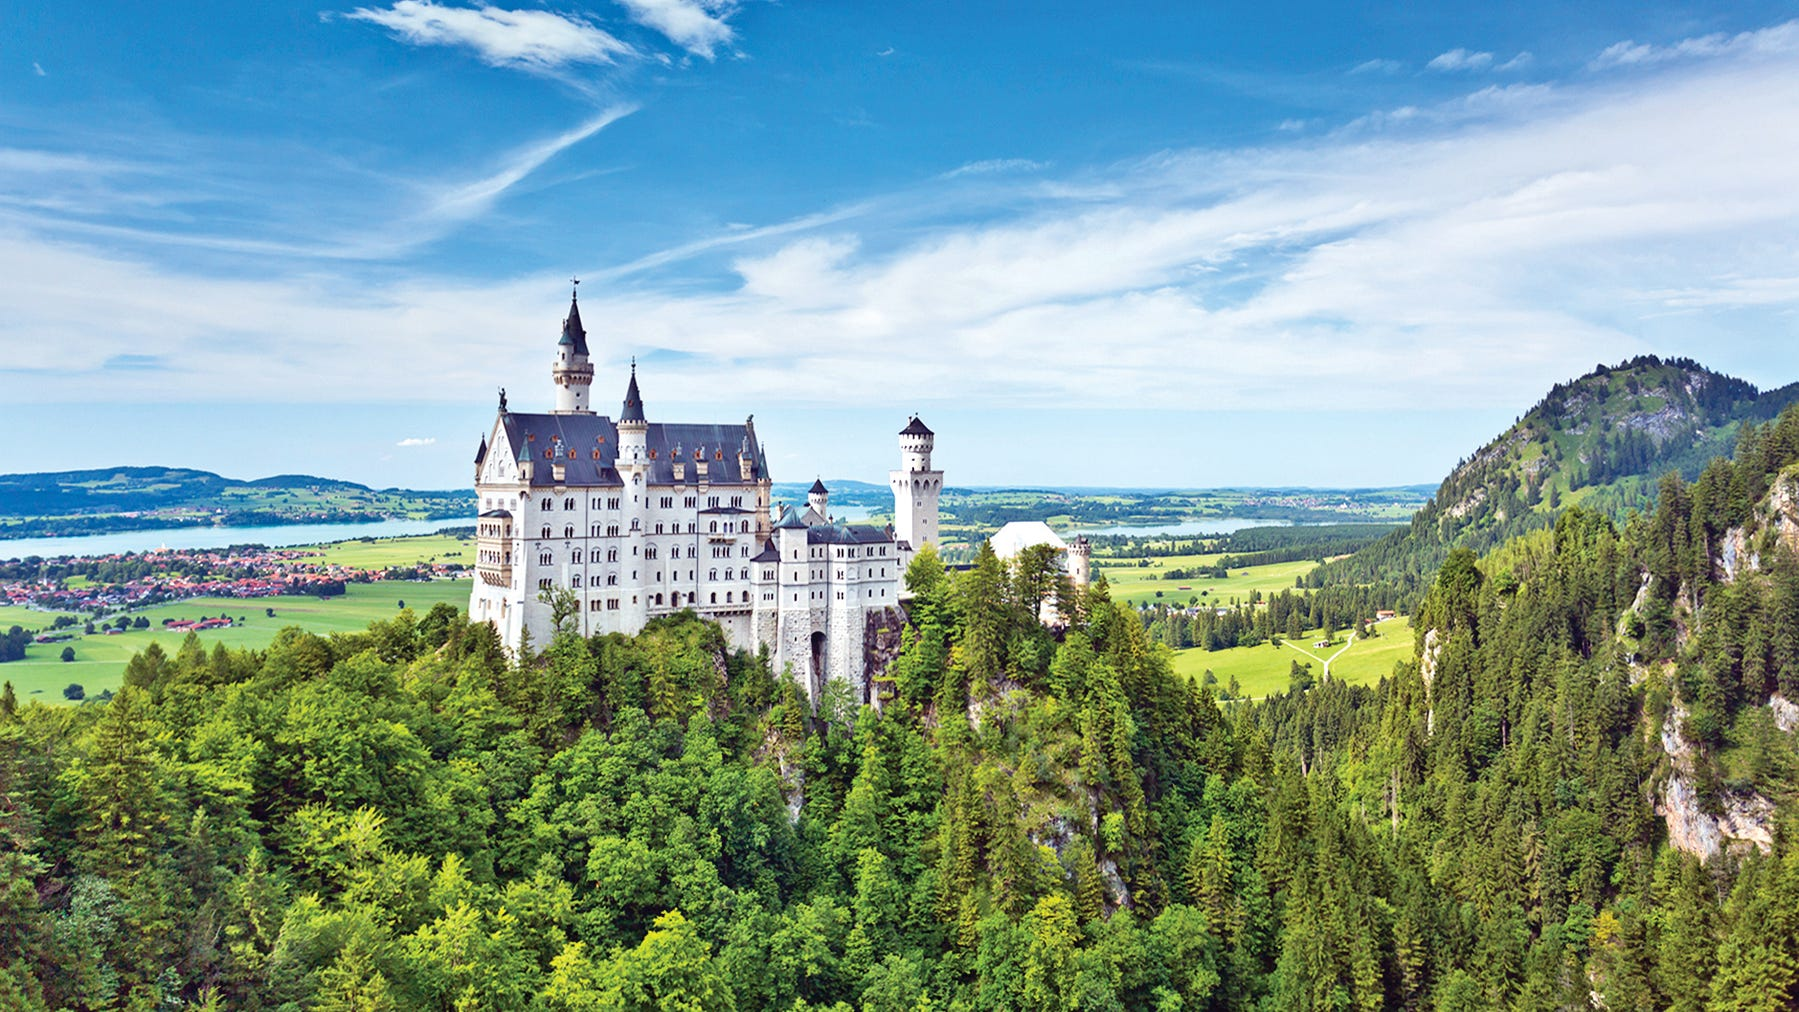 In its fairy-tale alpine setting, Neuschwanstein Castle is the most popular tourist destination in southern Bavaria.